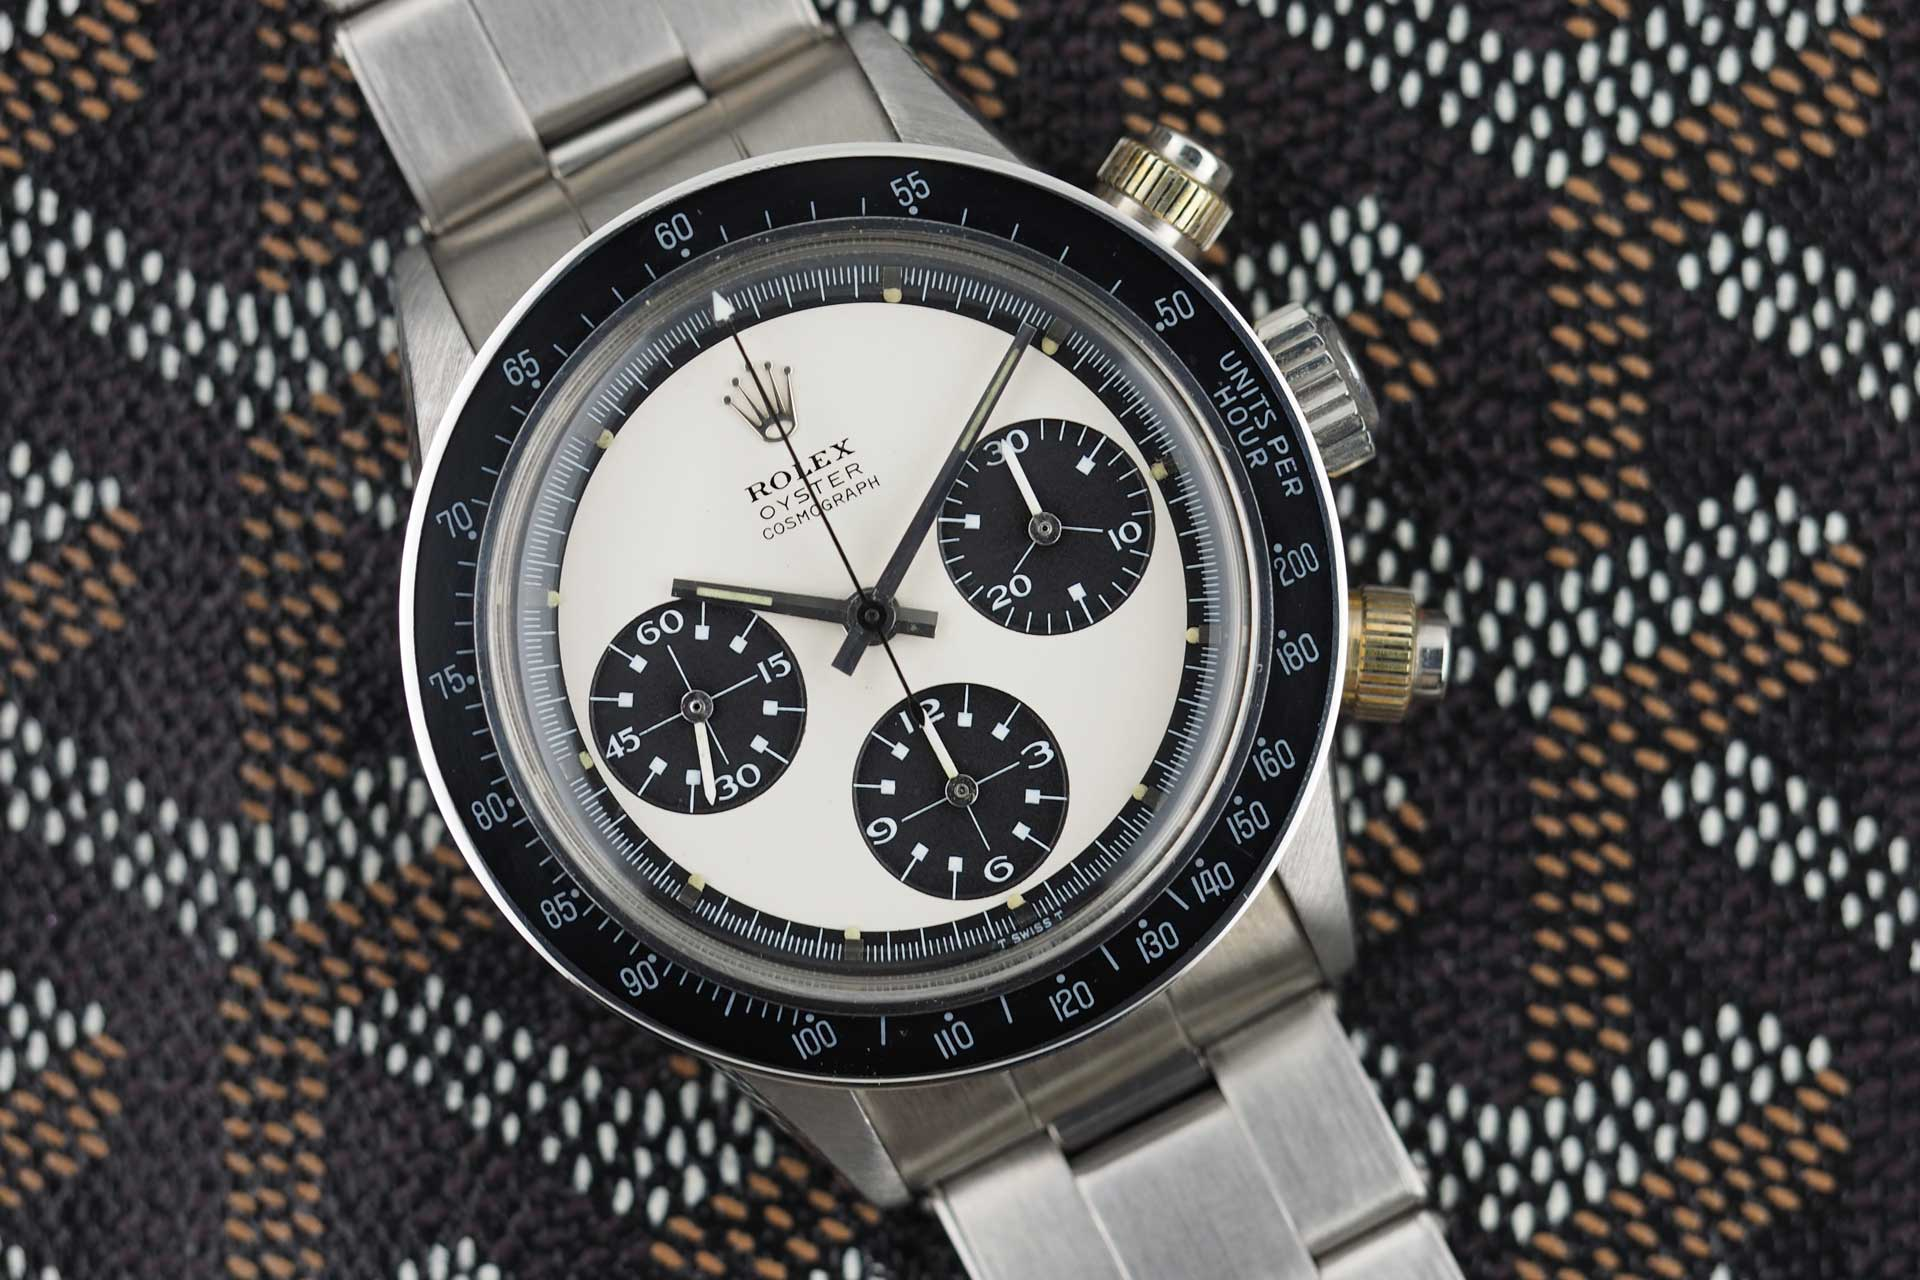 Mark 1 variety of the Paul Newman Daytona ref. 6263